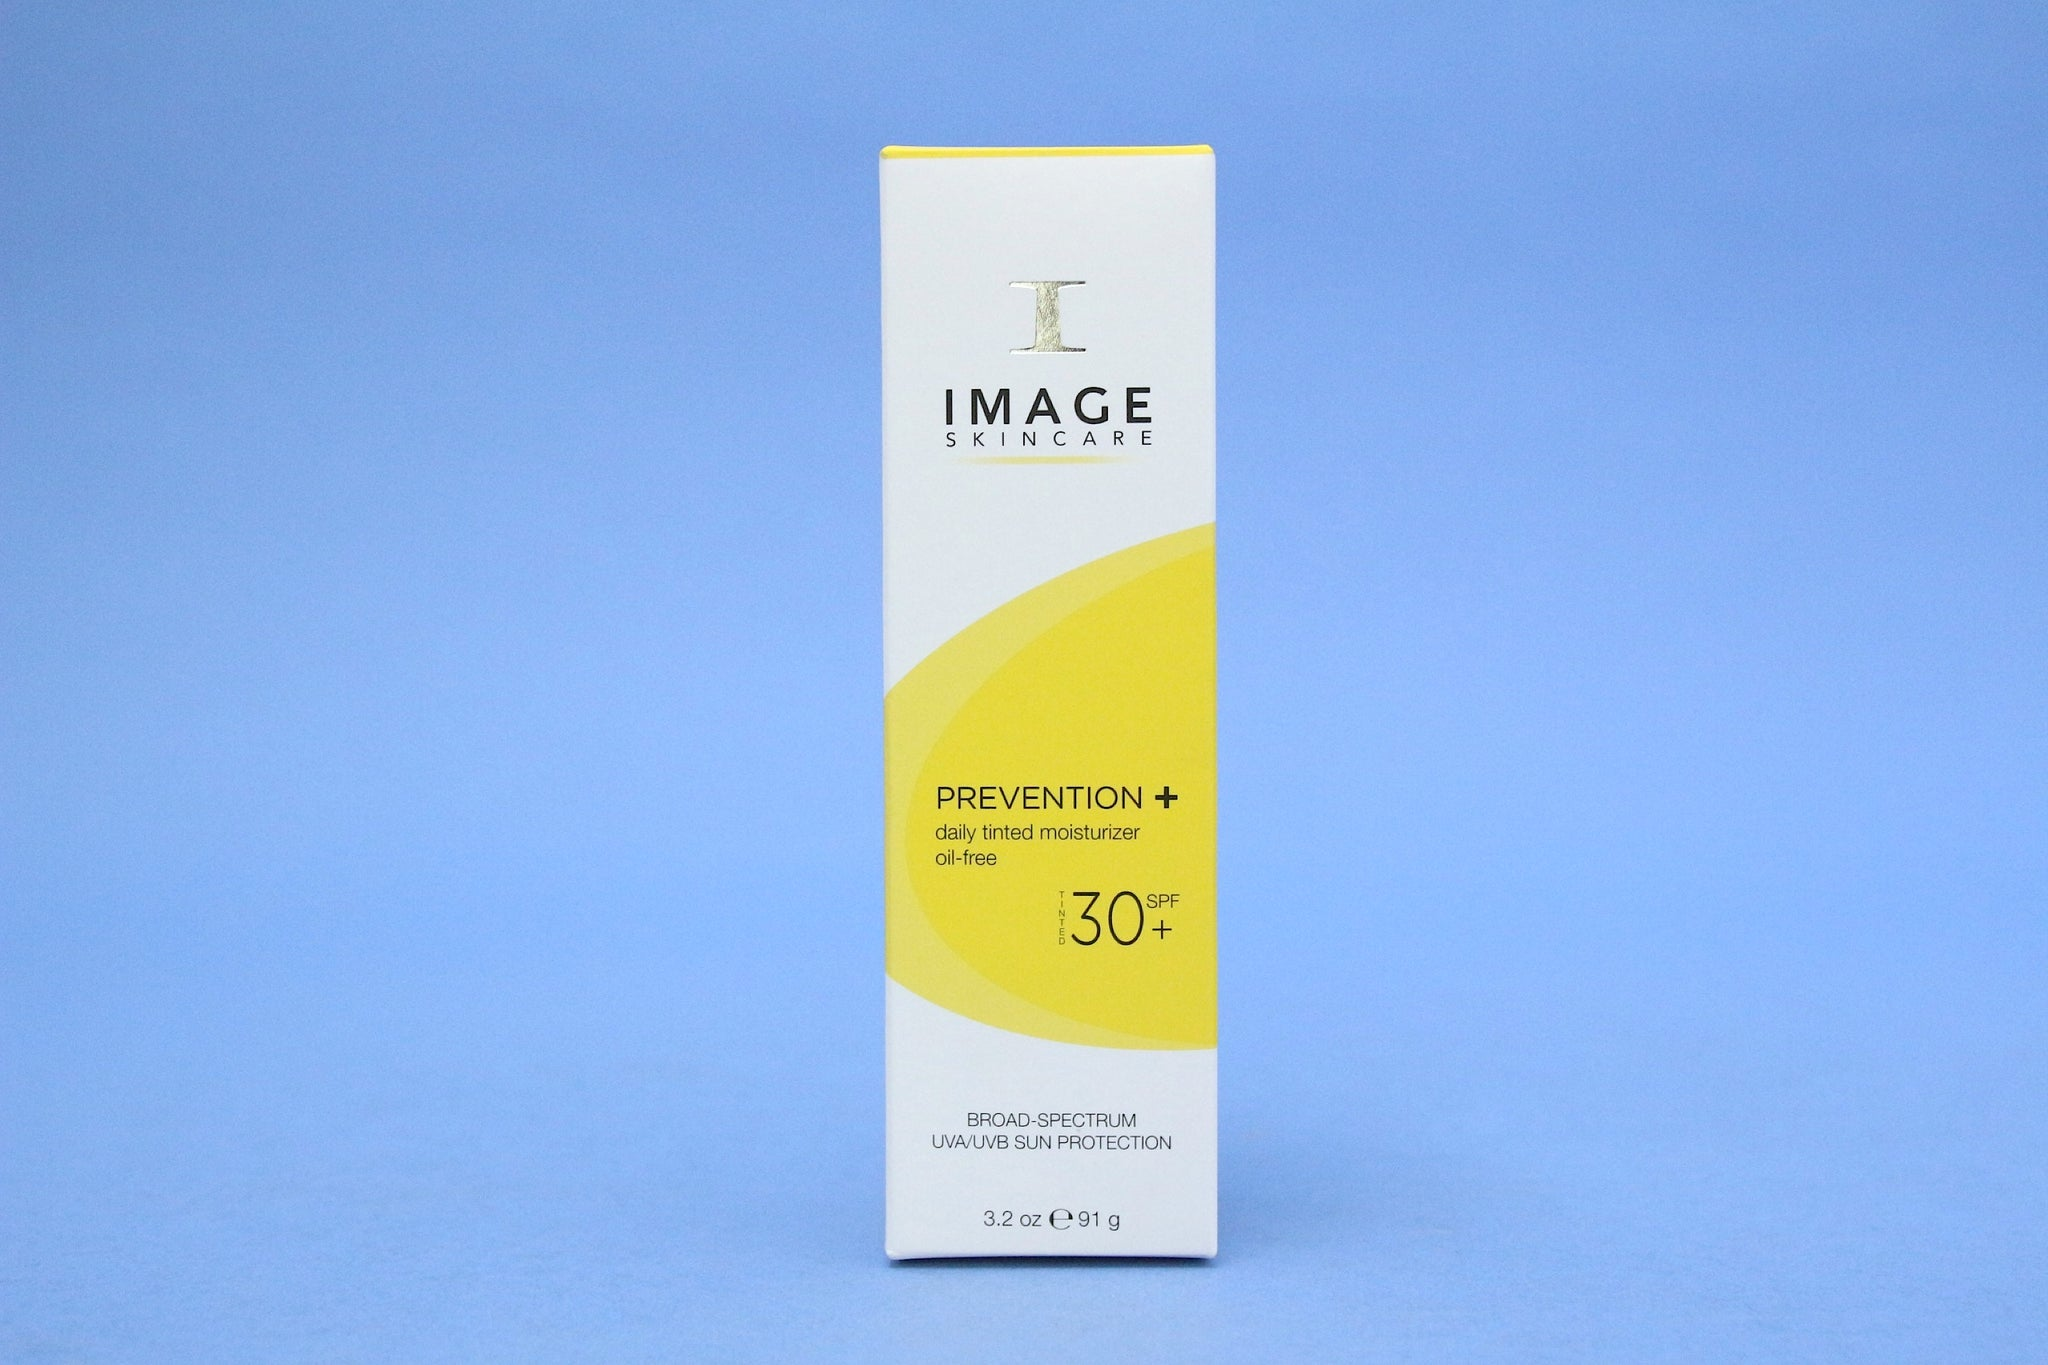 Image Skincare Prevention Daily Tinted Spf 30 Moisturizer 32